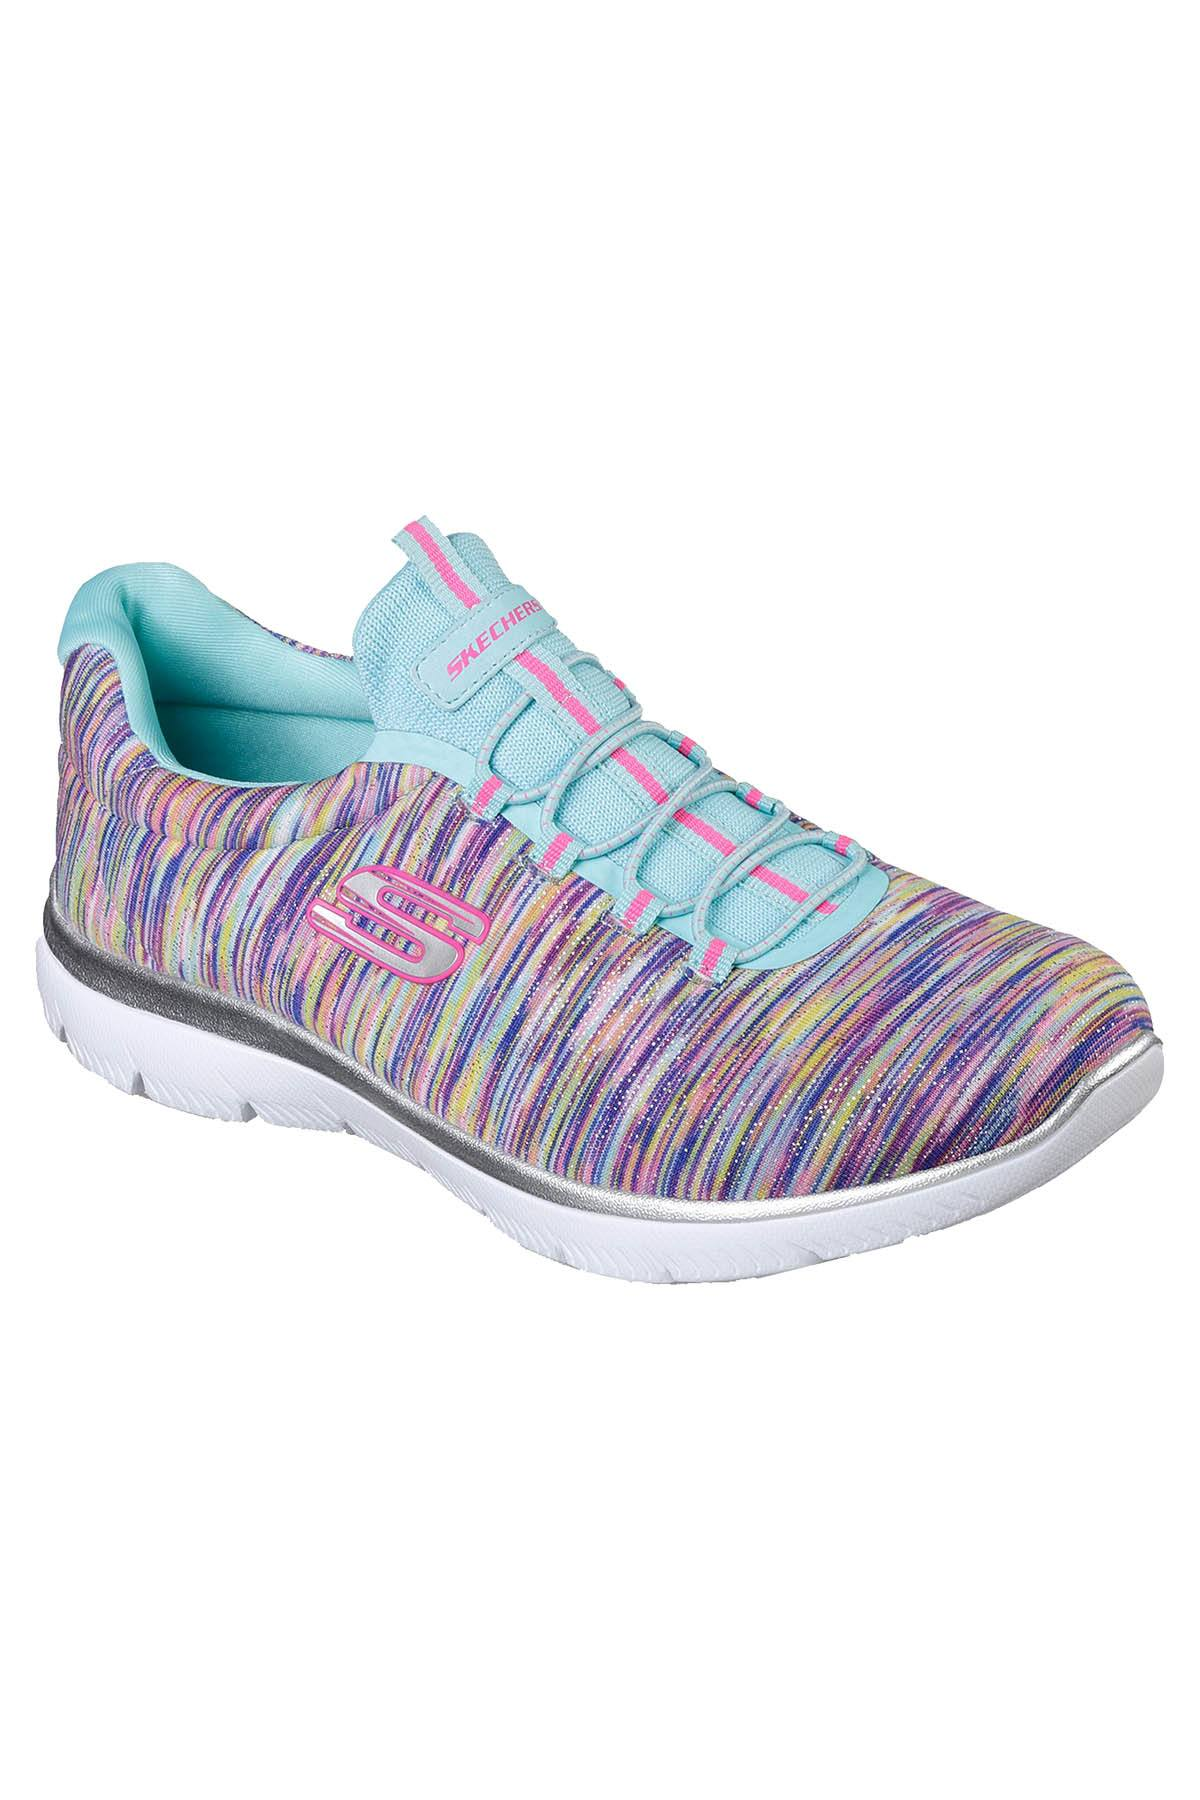 Sketchers Turquoise/Multi Summits Light-Dreaming Wide-Width Athletic Sneakers